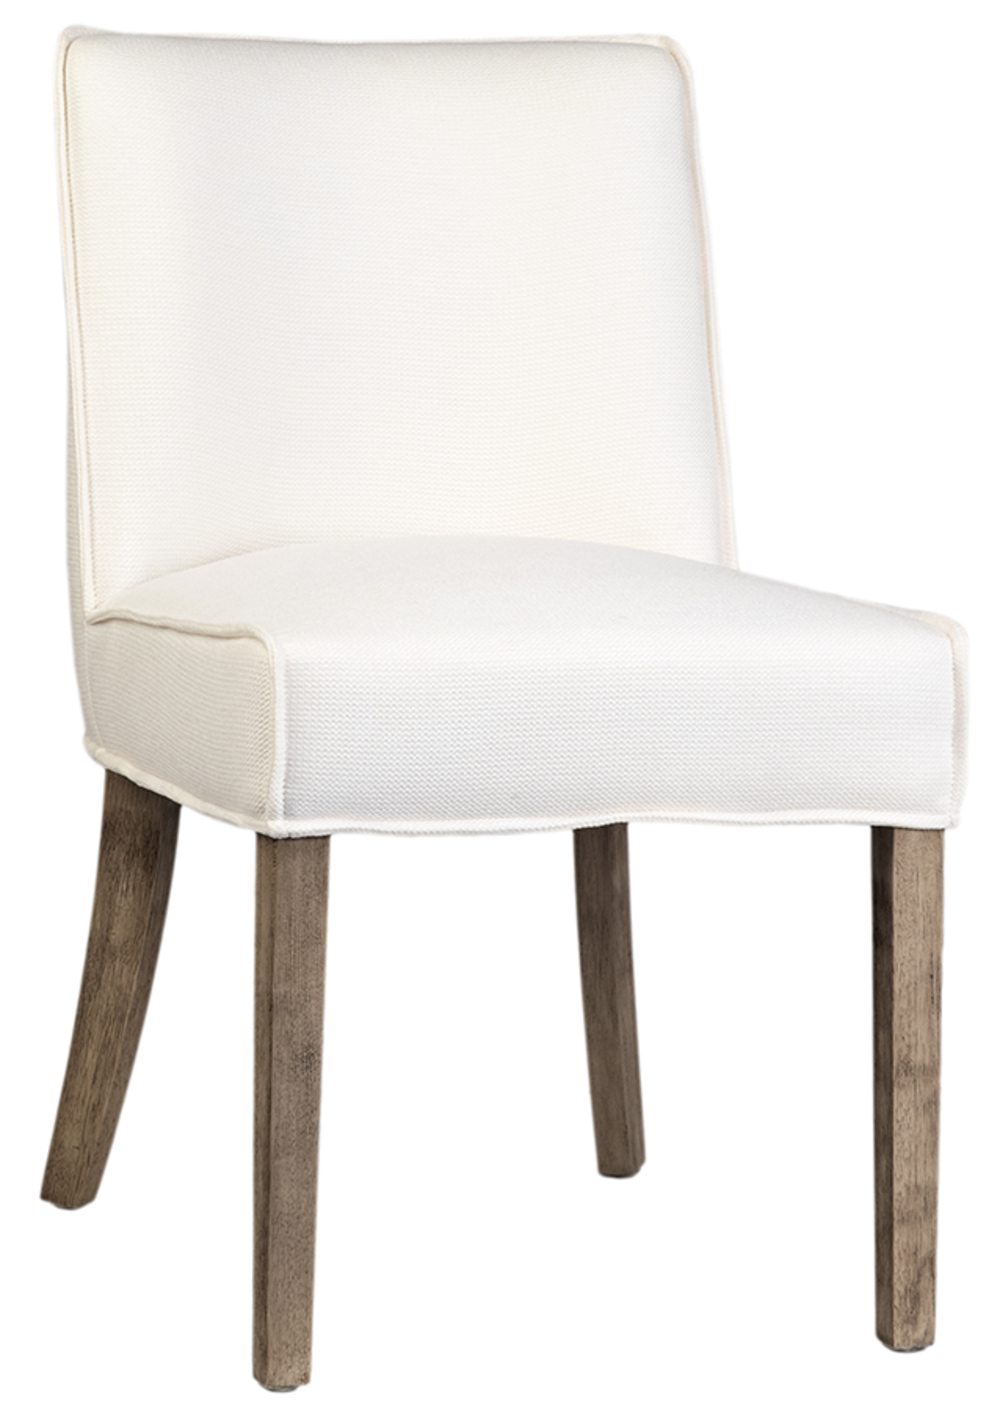 Dovetail Furniture - Sizan Dining Chair